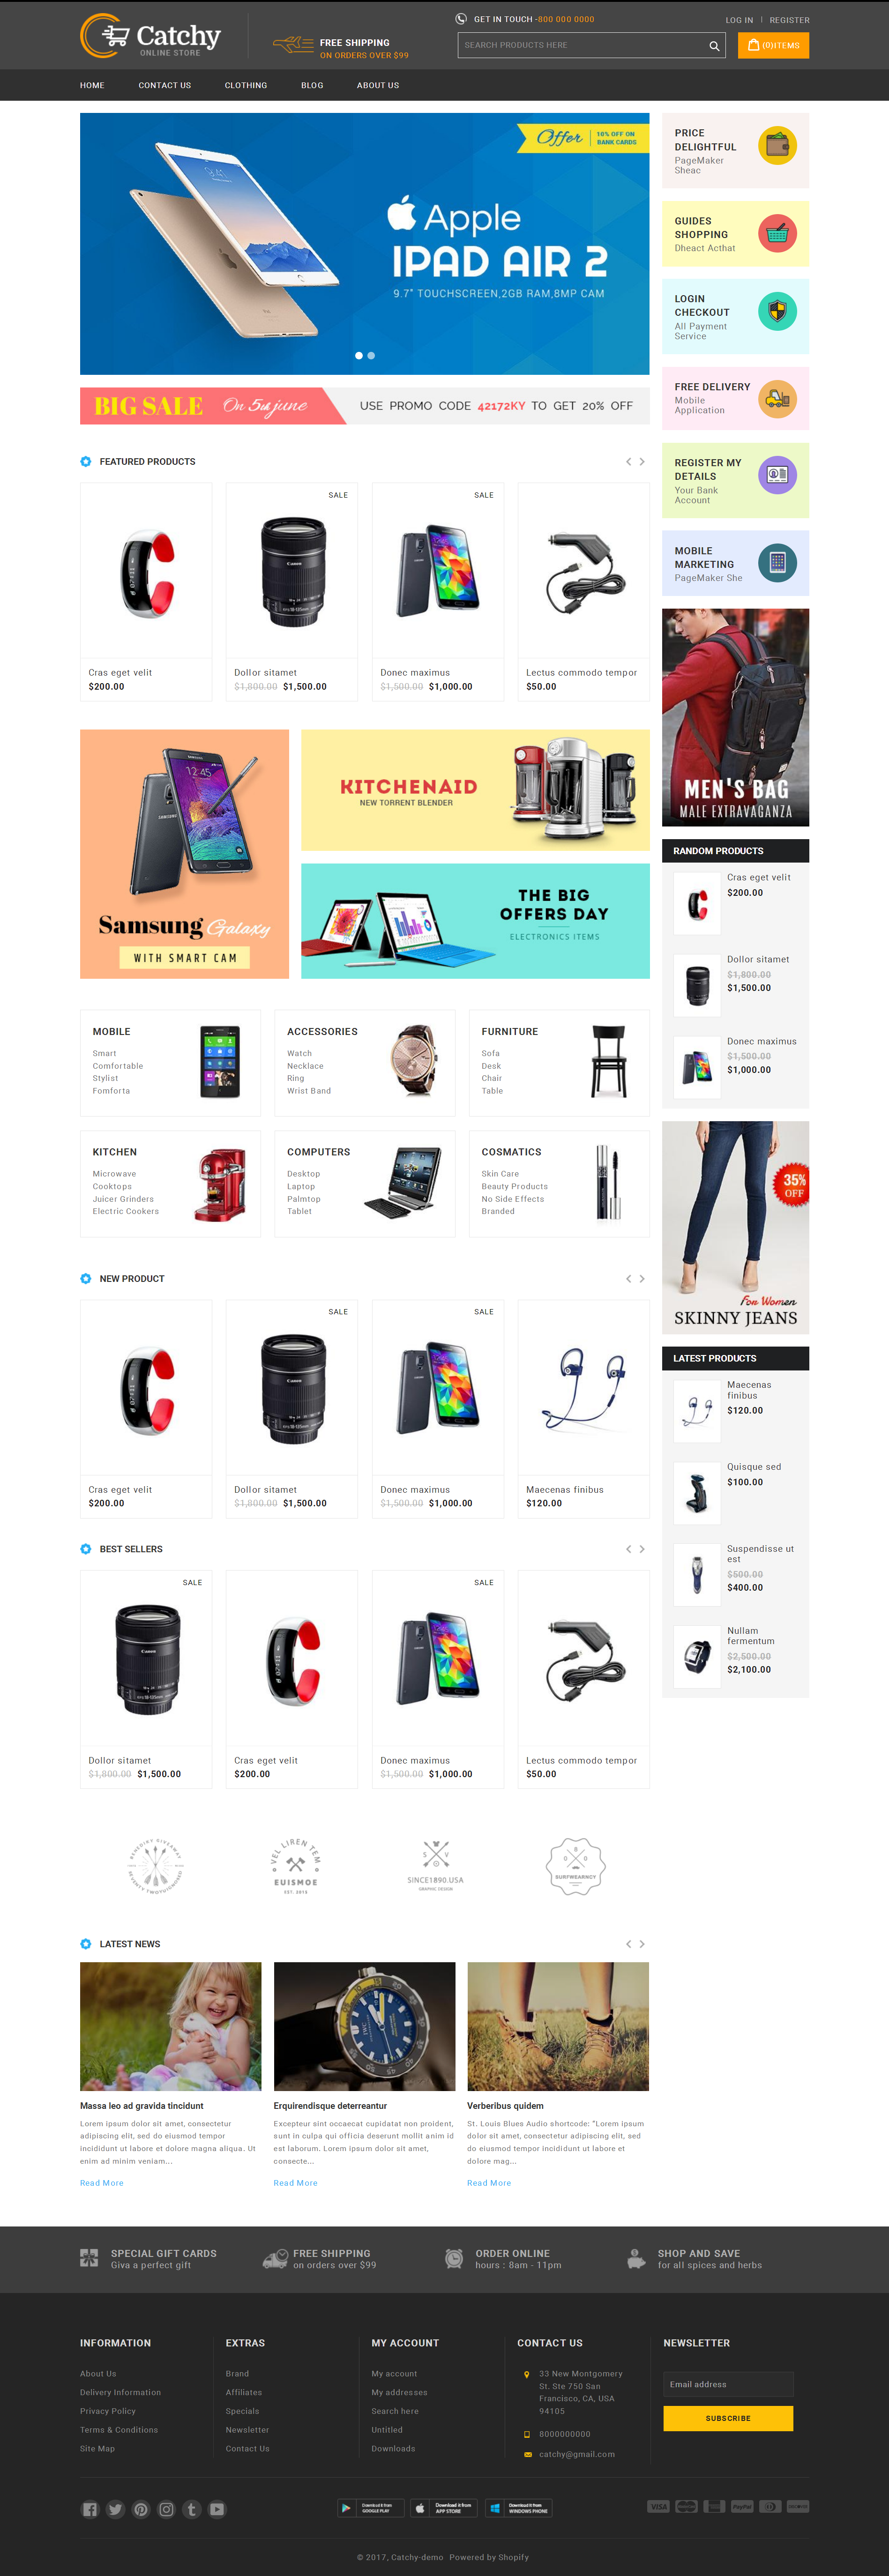 SHOPIFY THEME FOR PET SUPPLIES - Pet Care - Pet Service - Best Theme